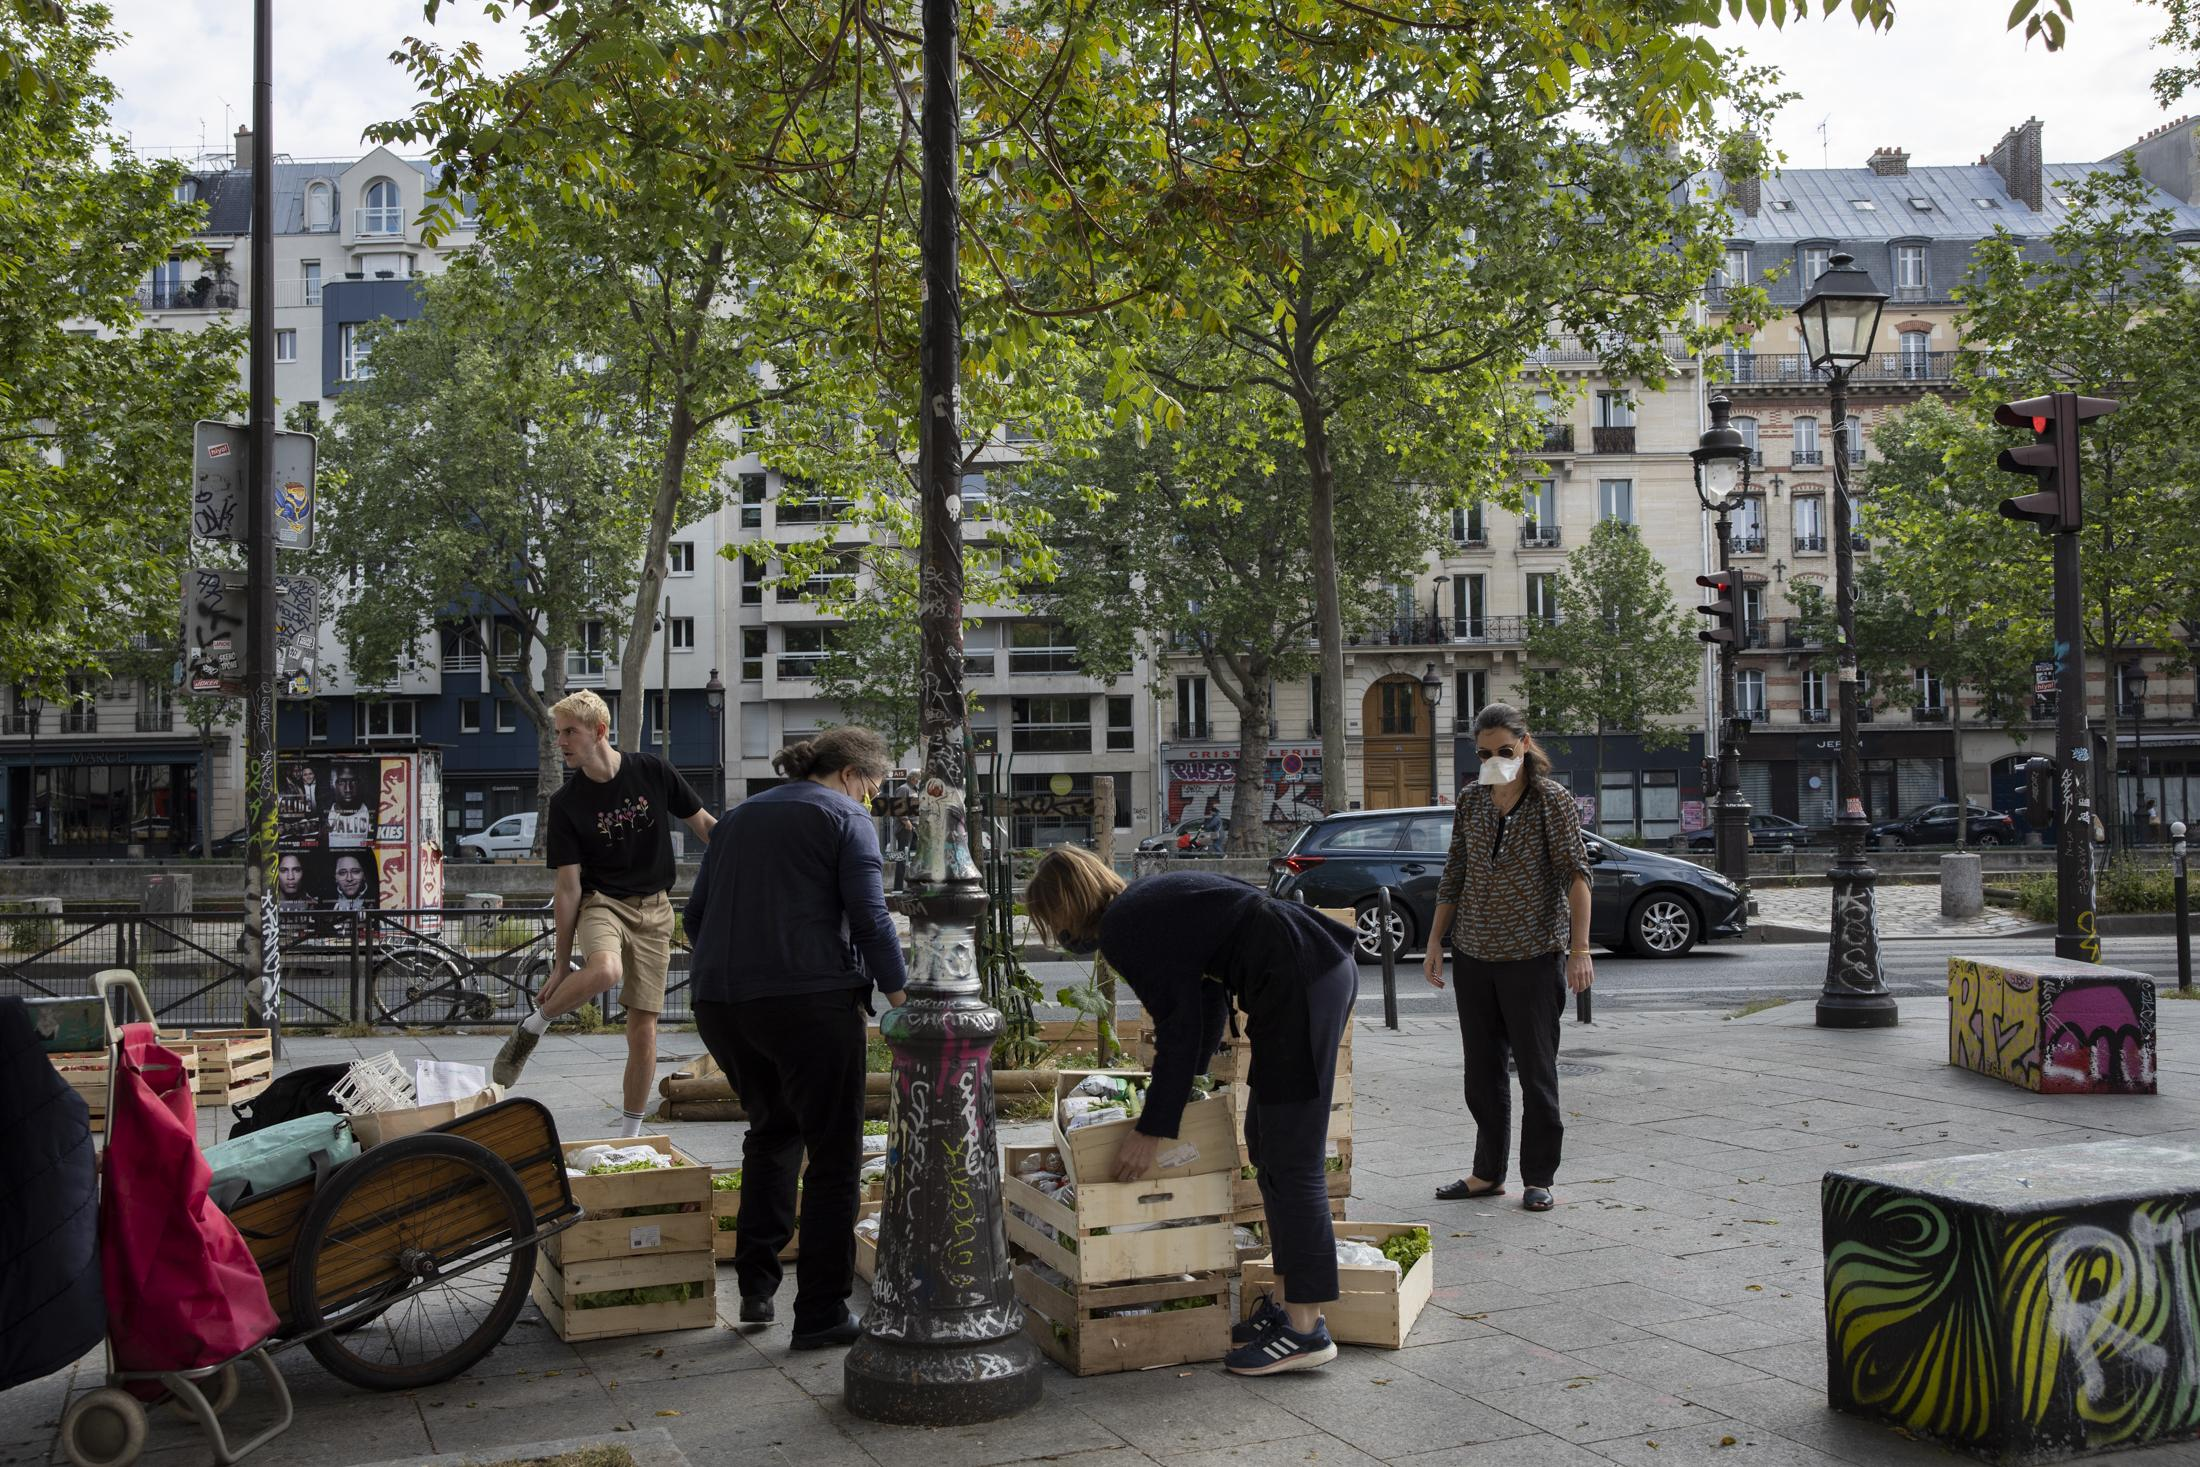 The baskets of products unloaded on the Place du Quai Valmy in Paris before the opening of distribution by La Ruche Qui Dit Oui. More than ten volunteers come to work in the sale and distribution of baskets during quarantine. Hundreds of people pass by during the distribution, some discover the services and the interest by the networks like that of the Hive is in full rise in France. Paris, France, April 2020